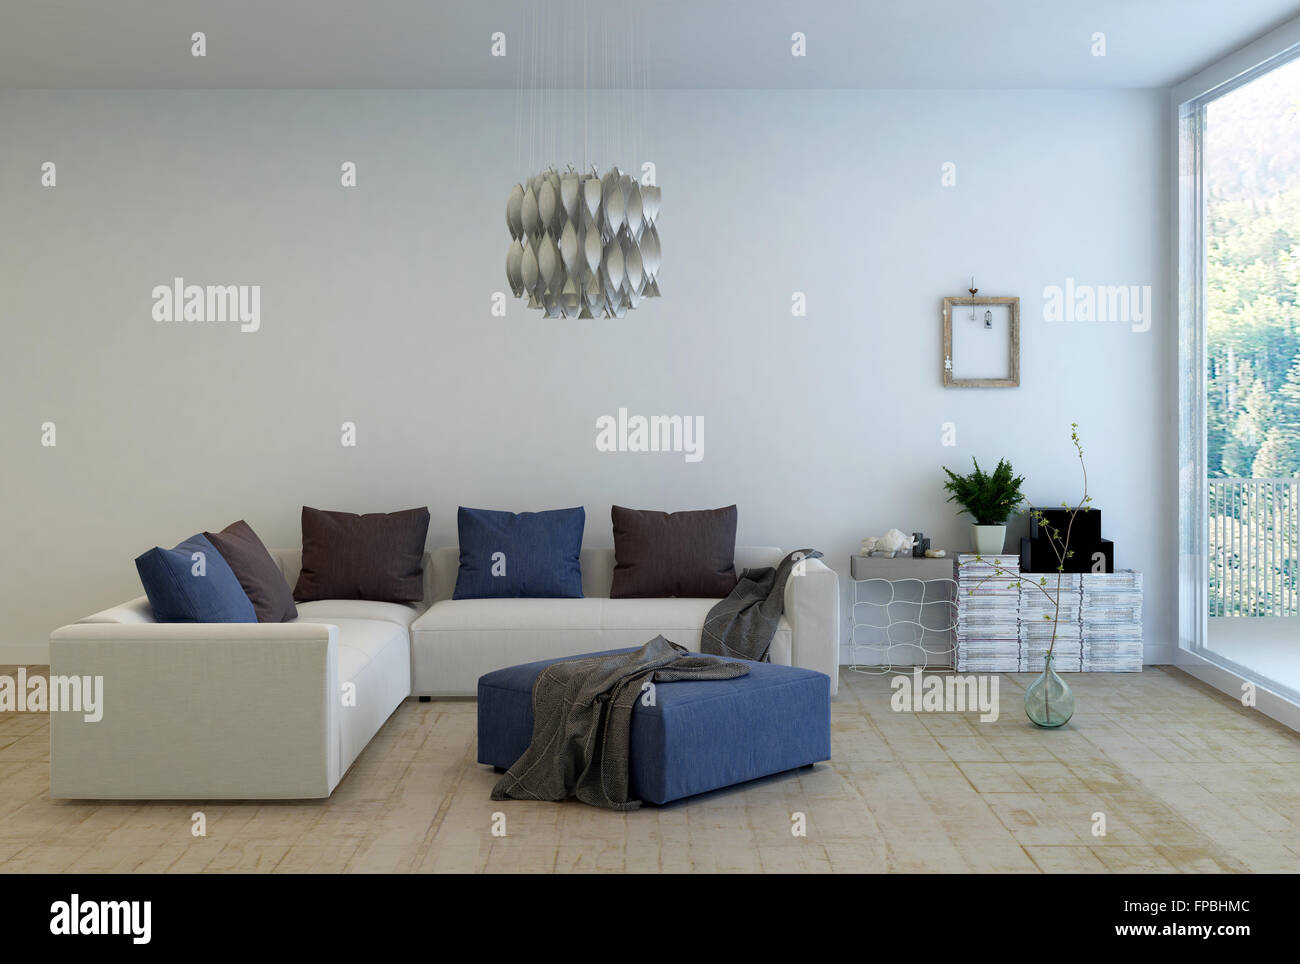 https www alamy com stock photo living room interior decorated with simple furnishings l shaped sofa 99829644 html